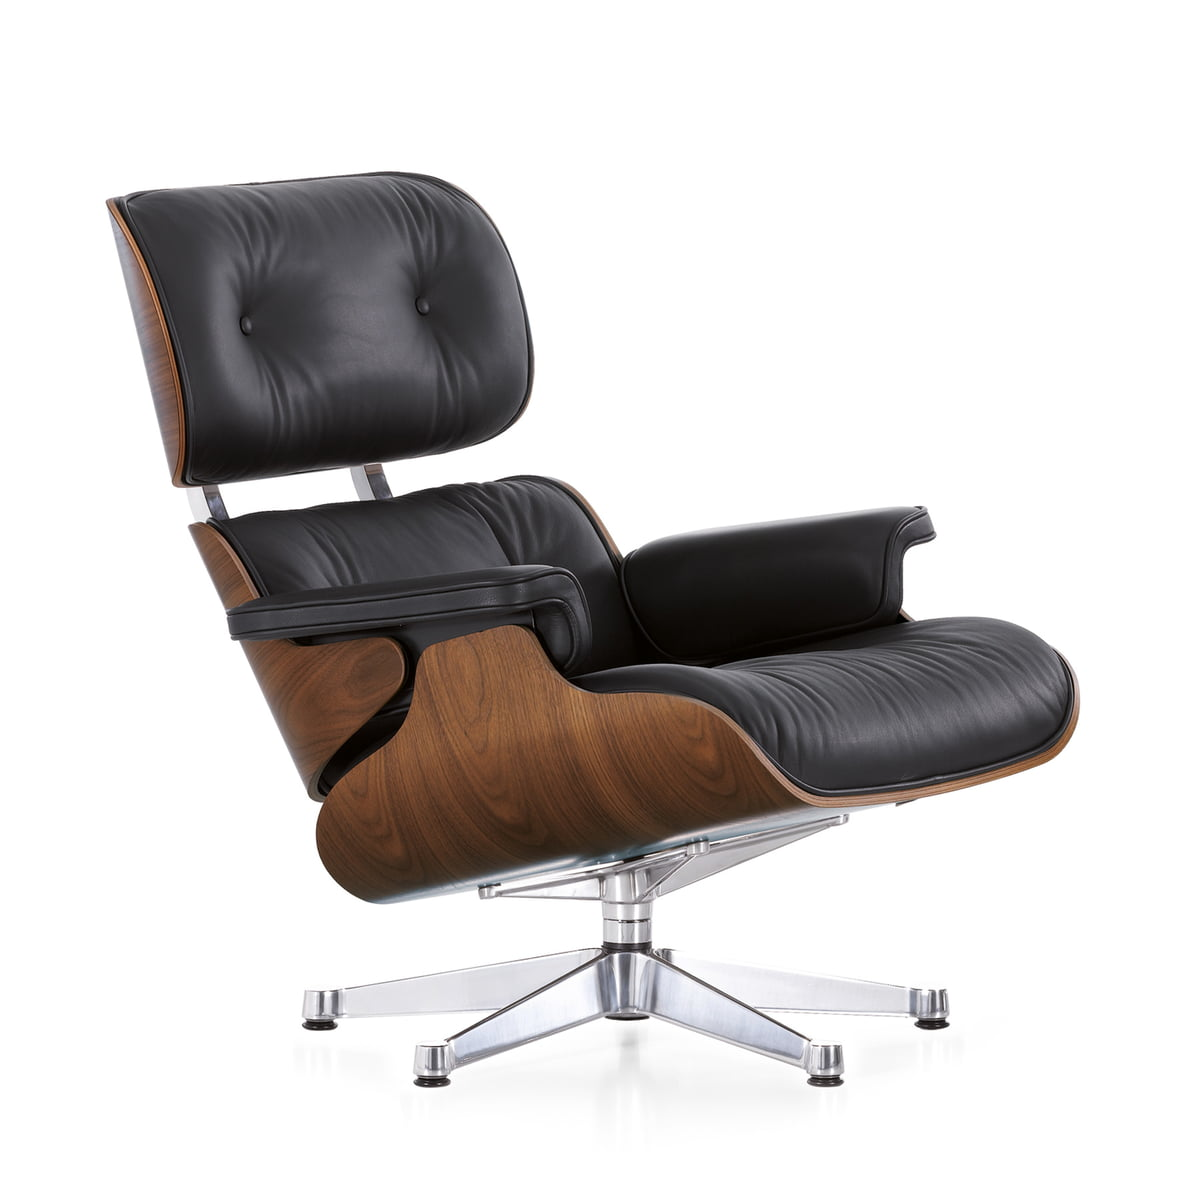 vitra lounge chair in nussbaum schwarz im shop. Black Bedroom Furniture Sets. Home Design Ideas